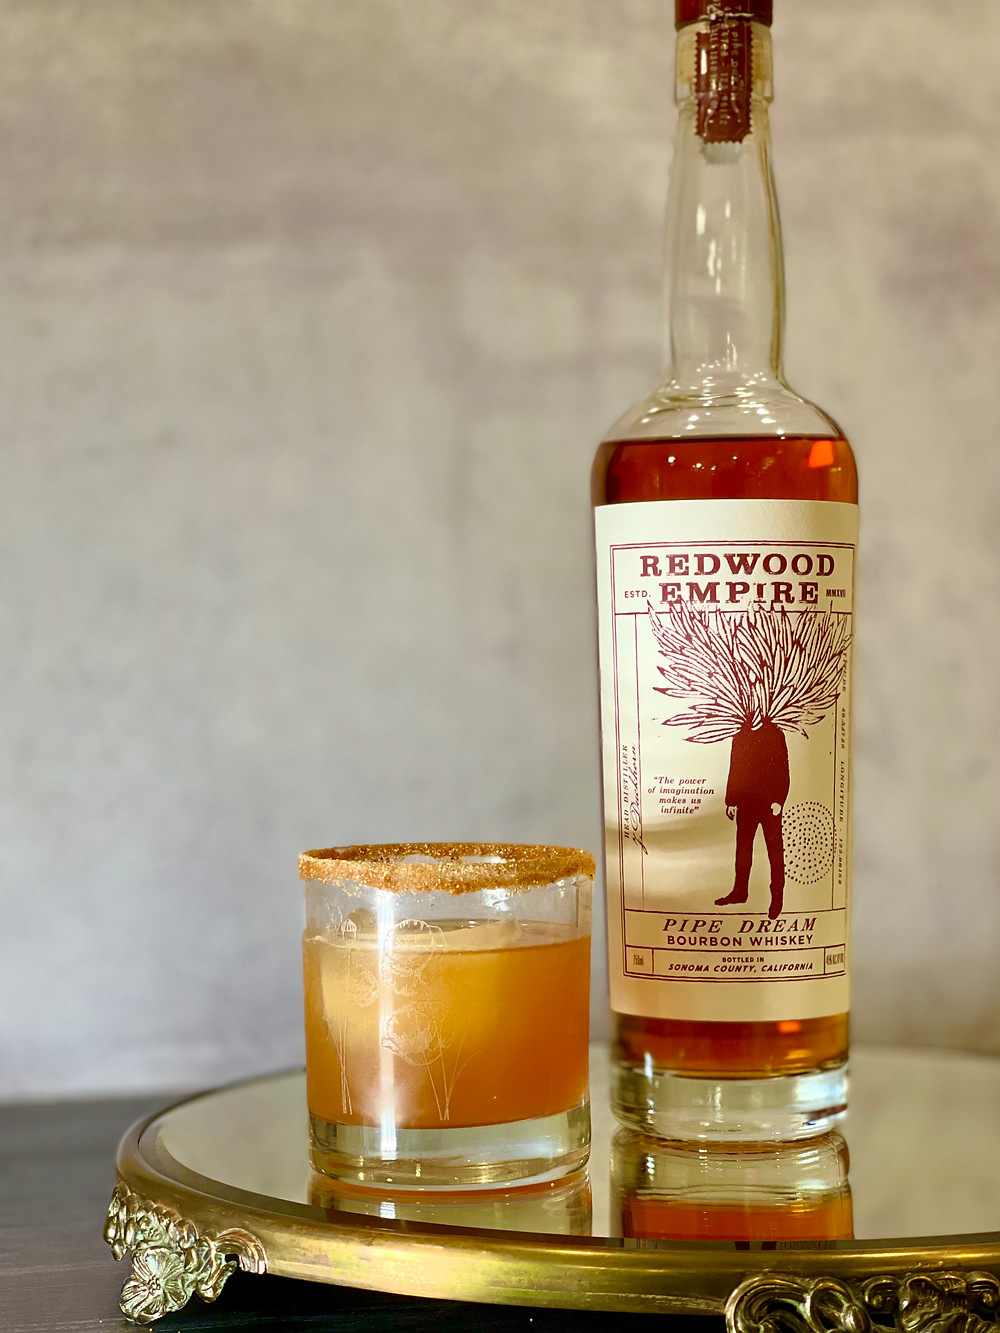 Rocks cocktail glass with spice rim filled with bourbon cocktail, next to Redwood Empire Pipe Dream Bourbon Bottle with red and white label.